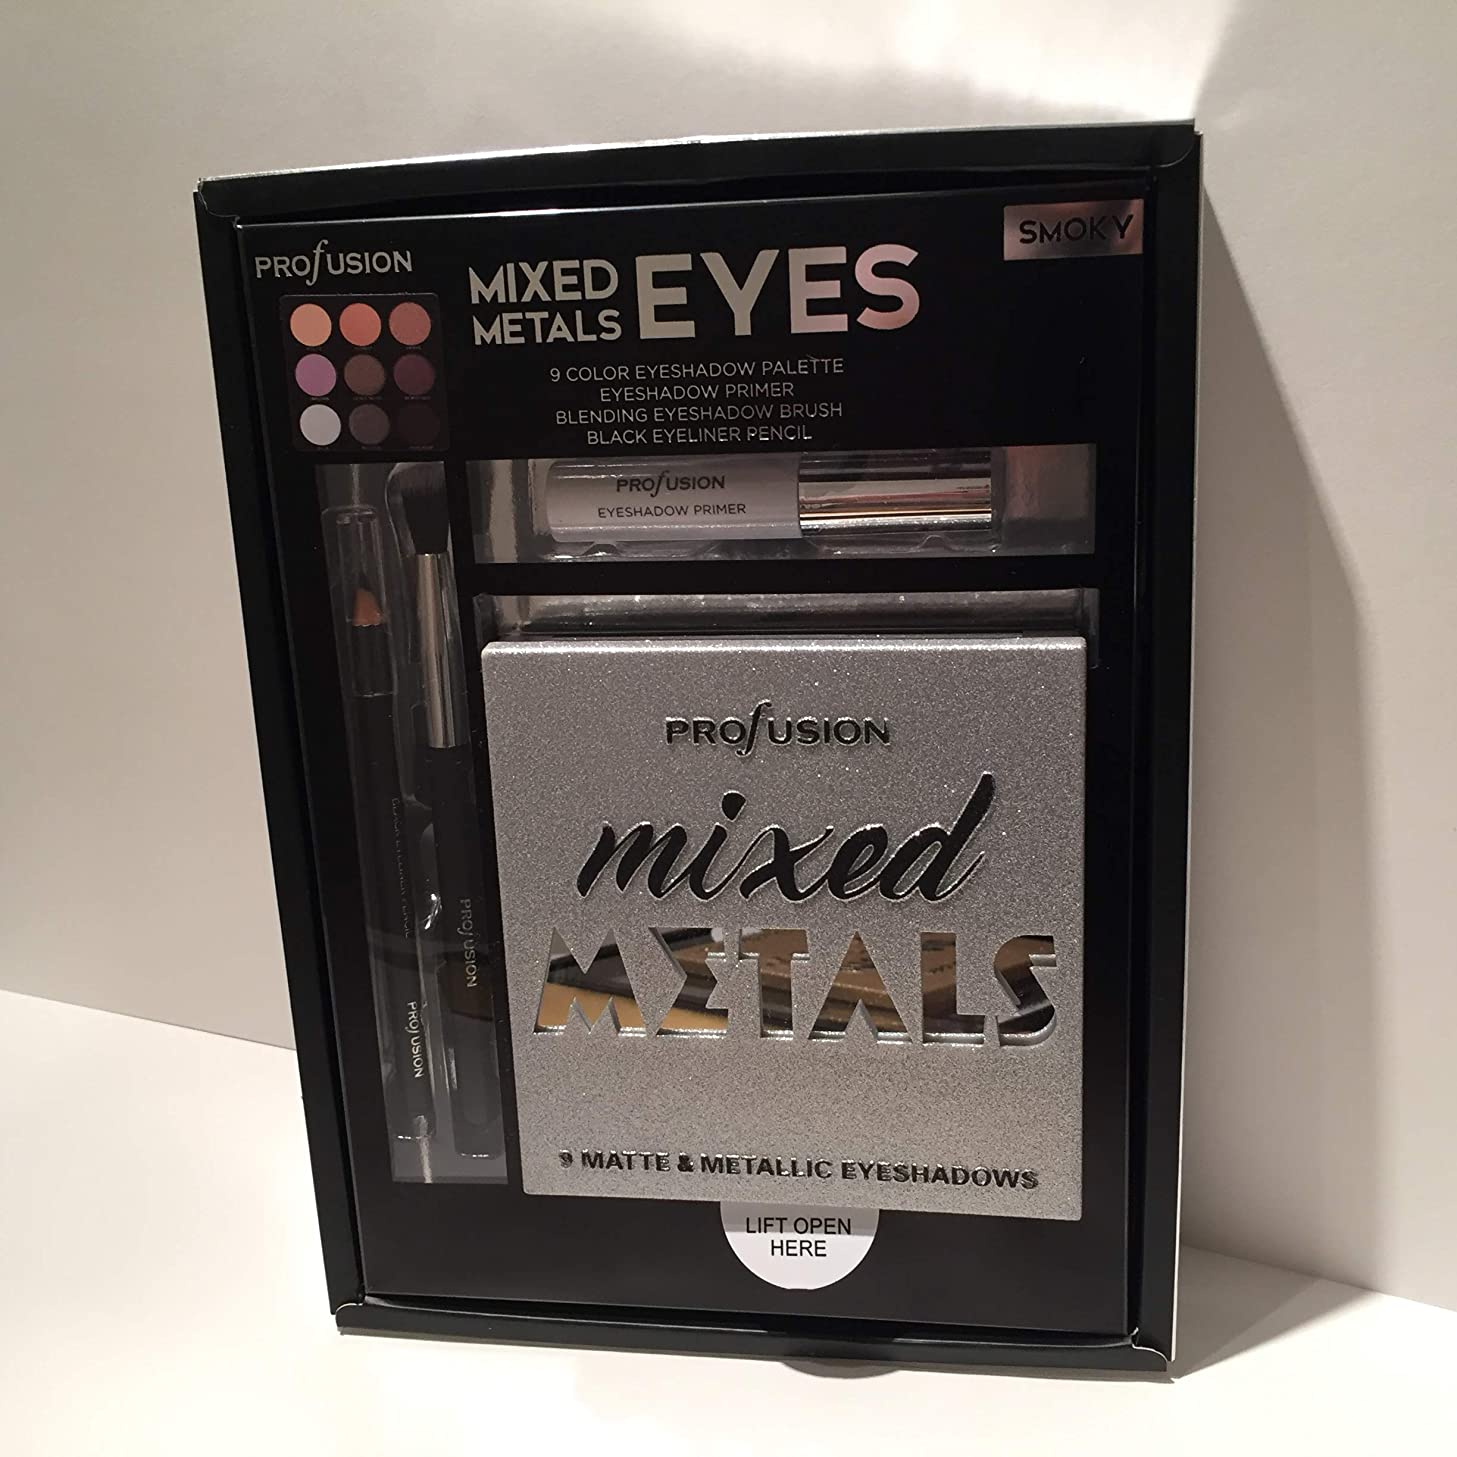 原告国民現実的PROFUSION Mixed Metals & Eyes Palette - Smoky (並行輸入品)